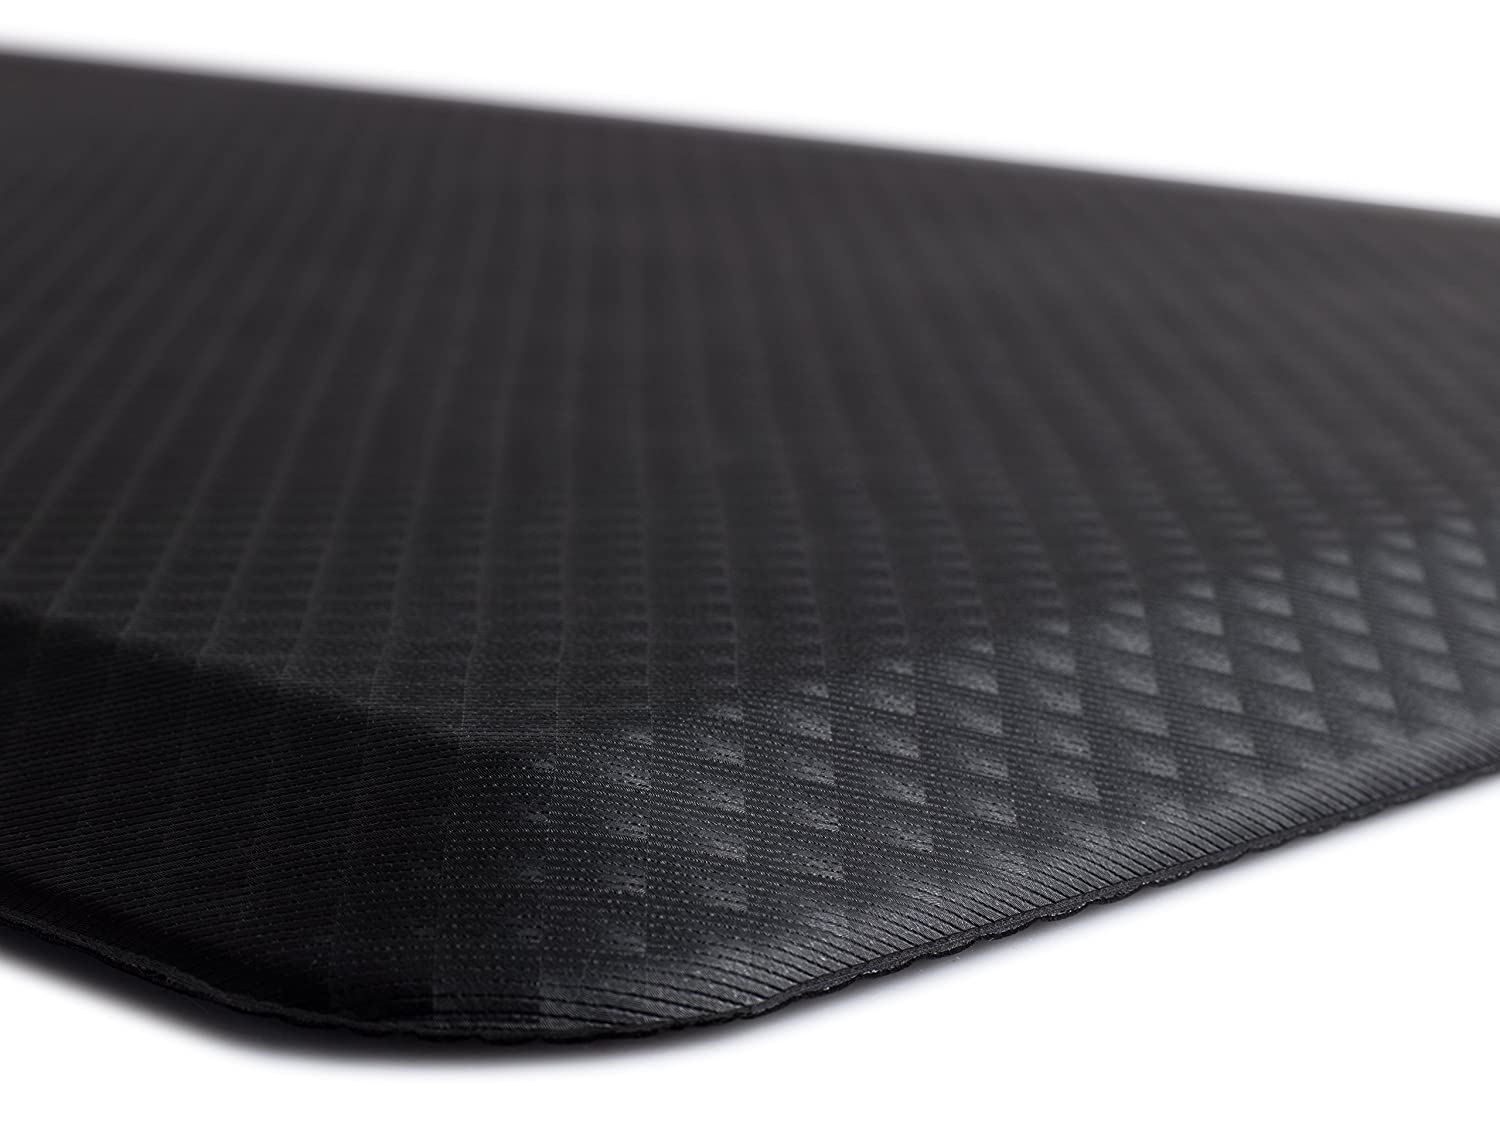 "The Original 3/4"" KANGAROO (TM) Non-Slip Anti-Fatigue Comfort Mat, Ergonomically Engineered"